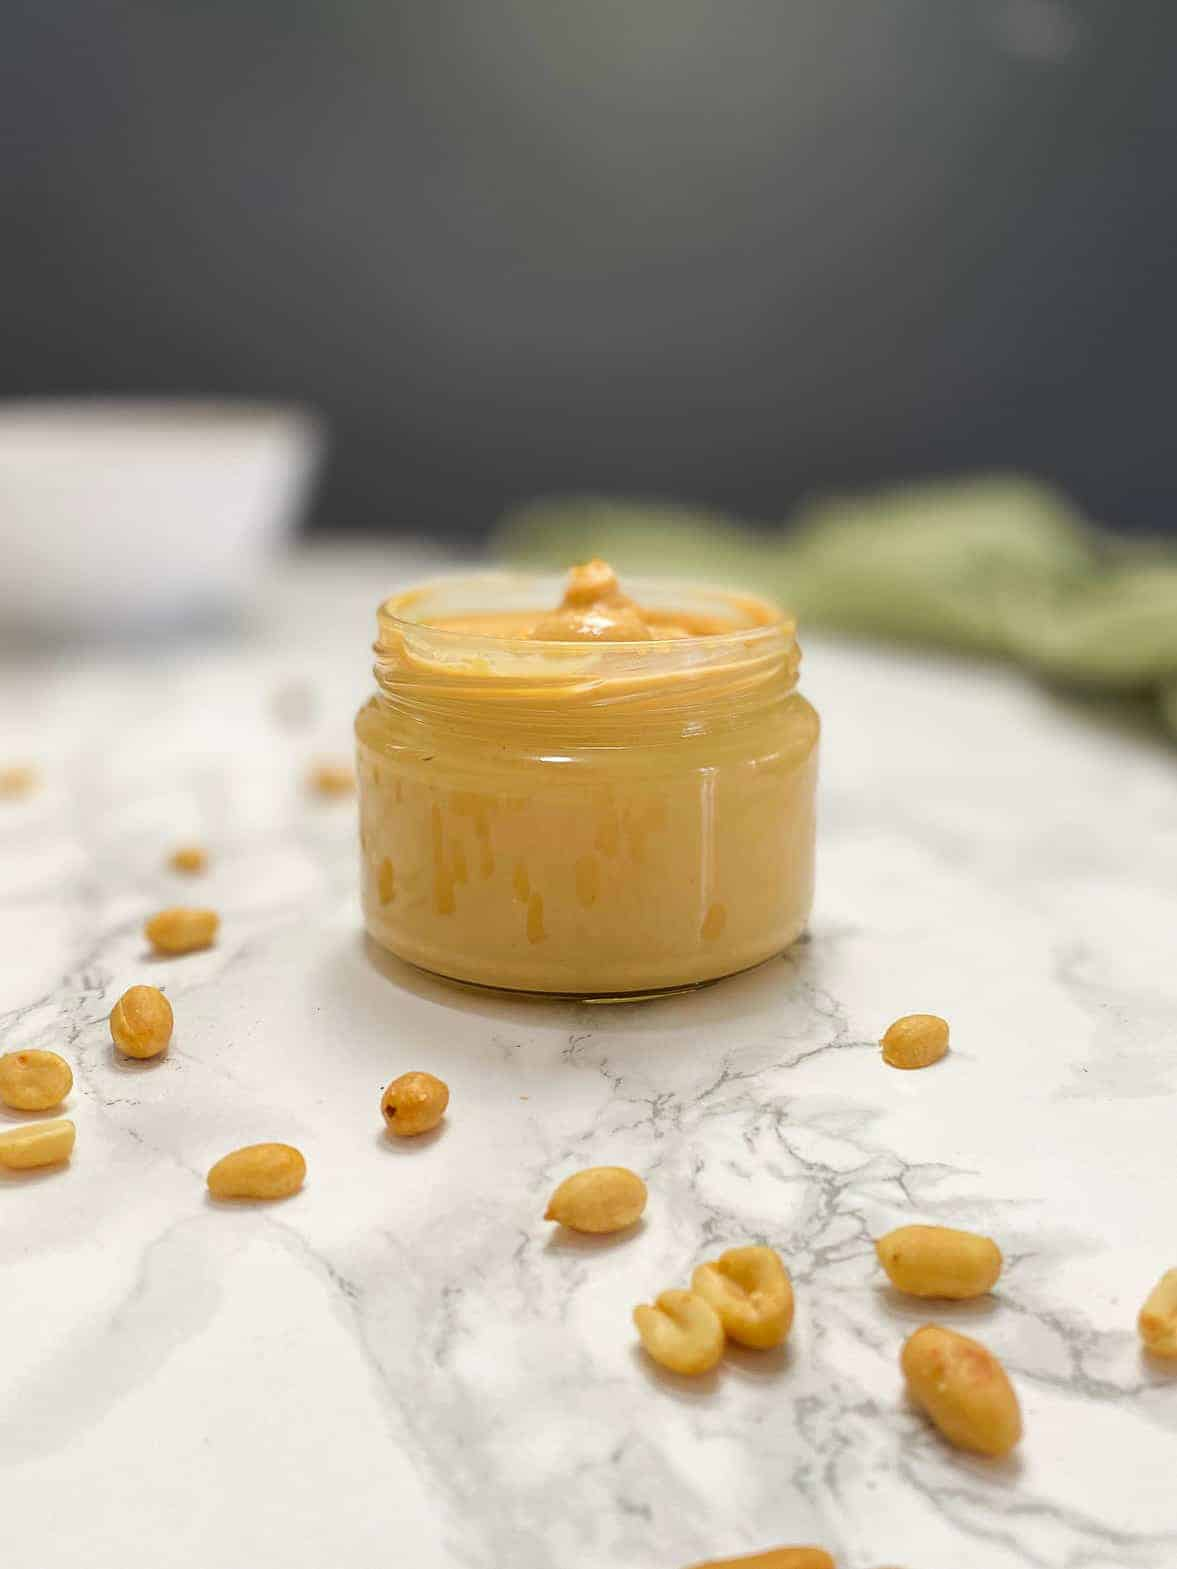 peanut butter in glass jar with peanuts scattered around the jar